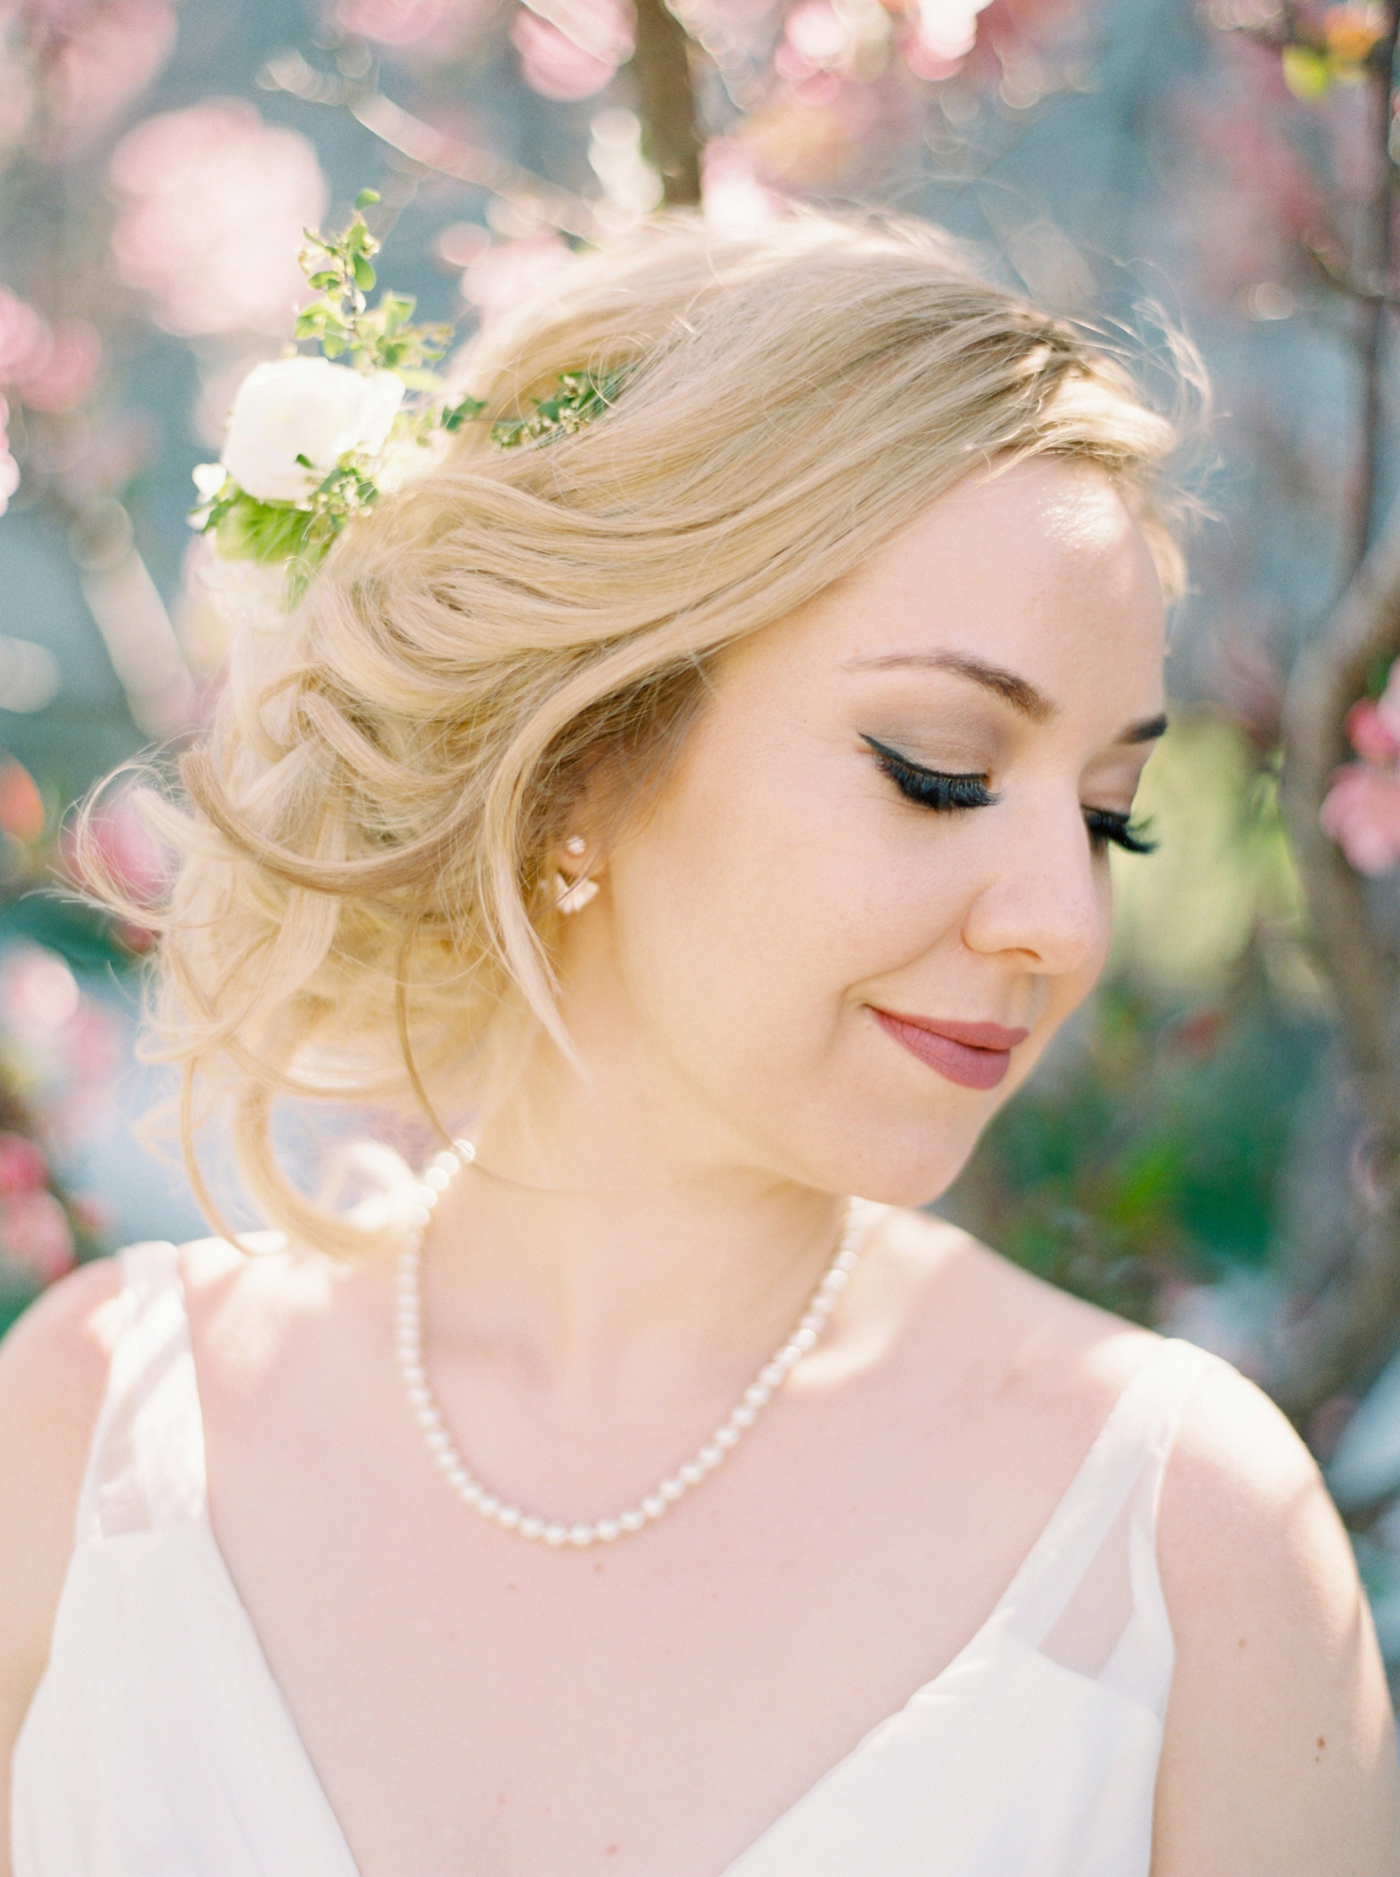 calgary wedding photographers | Ukrainian wedding | justine milton fine art photographer | bridal portrait